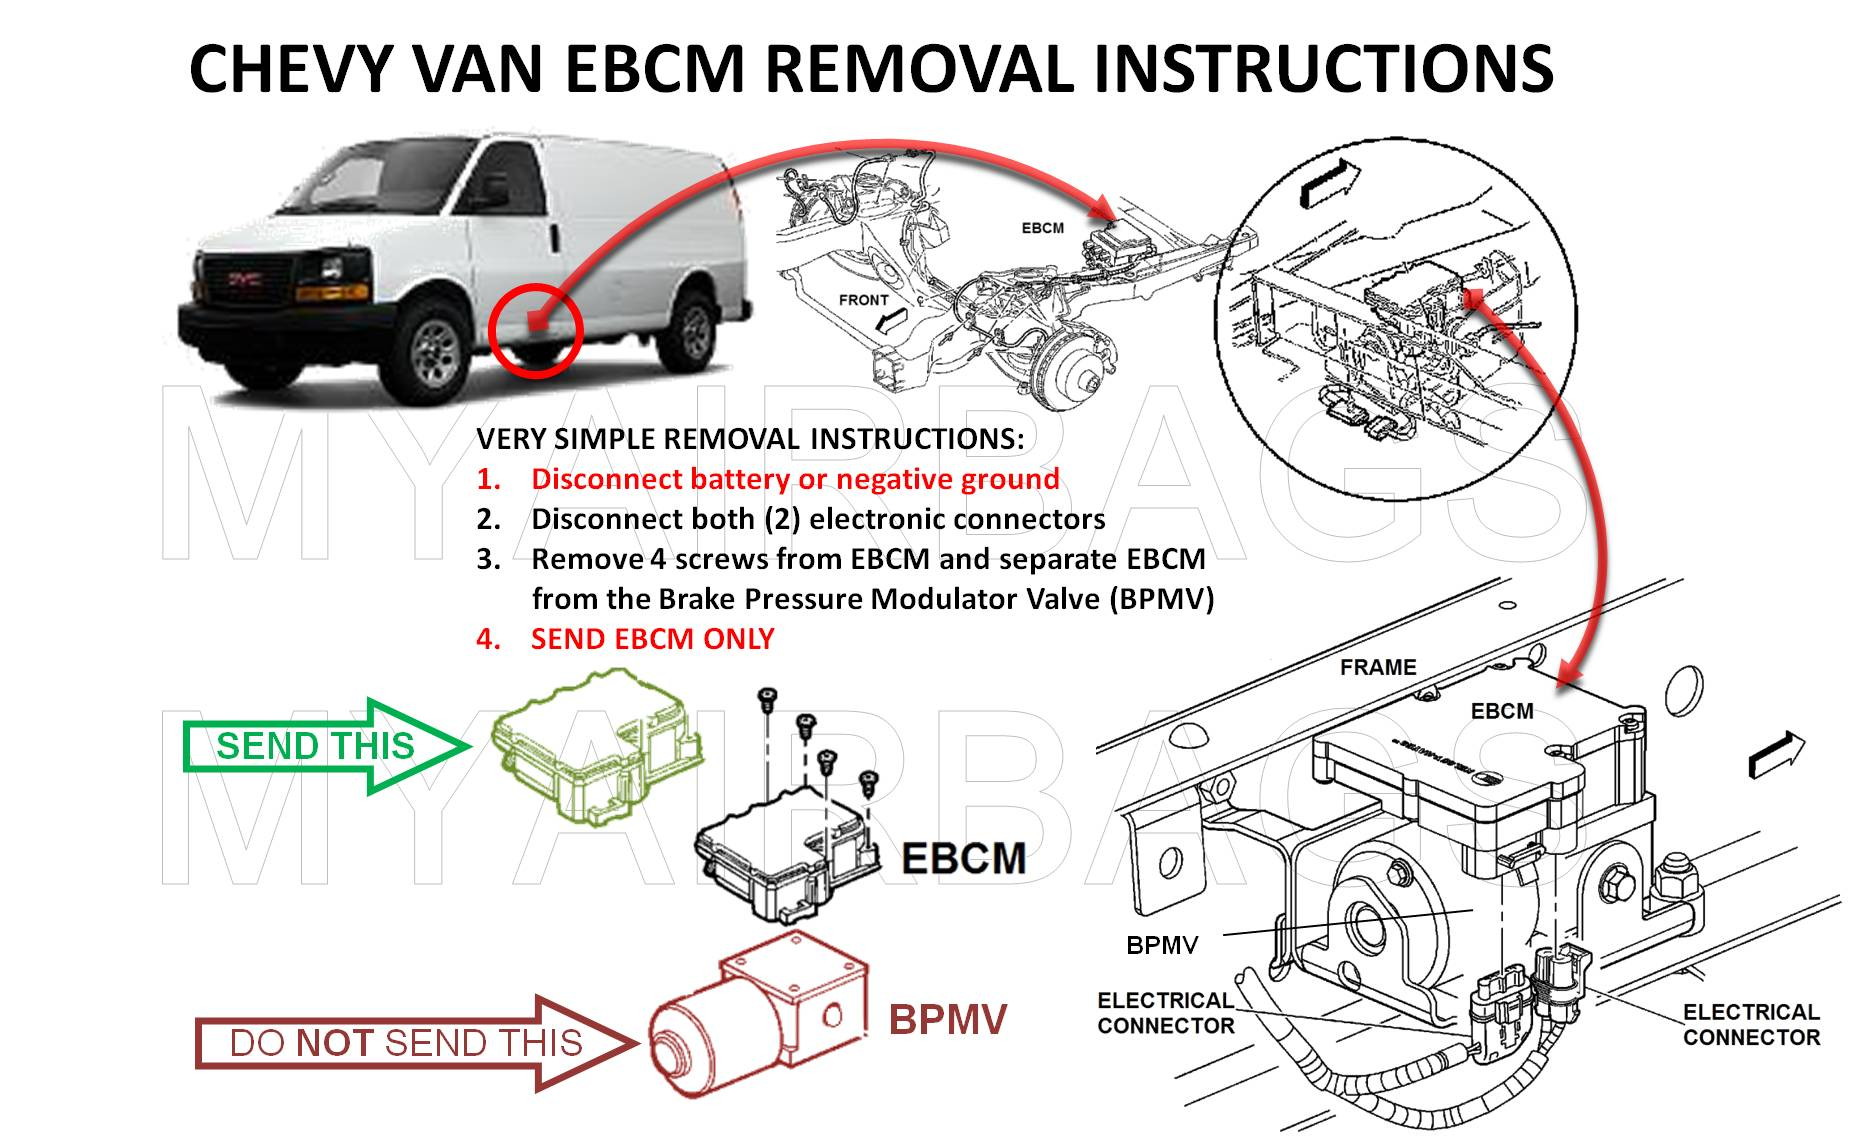 Ebcm Location Buick Century likewise Abs kh select vehicle furthermore 2003 Escalade Front Suspension Diagram as well Adam E2 80 99s Service Tip 3a Service Stabilitrak Message moreover Abs kh select vehicle. on trailblazer ebcm location on vehicle